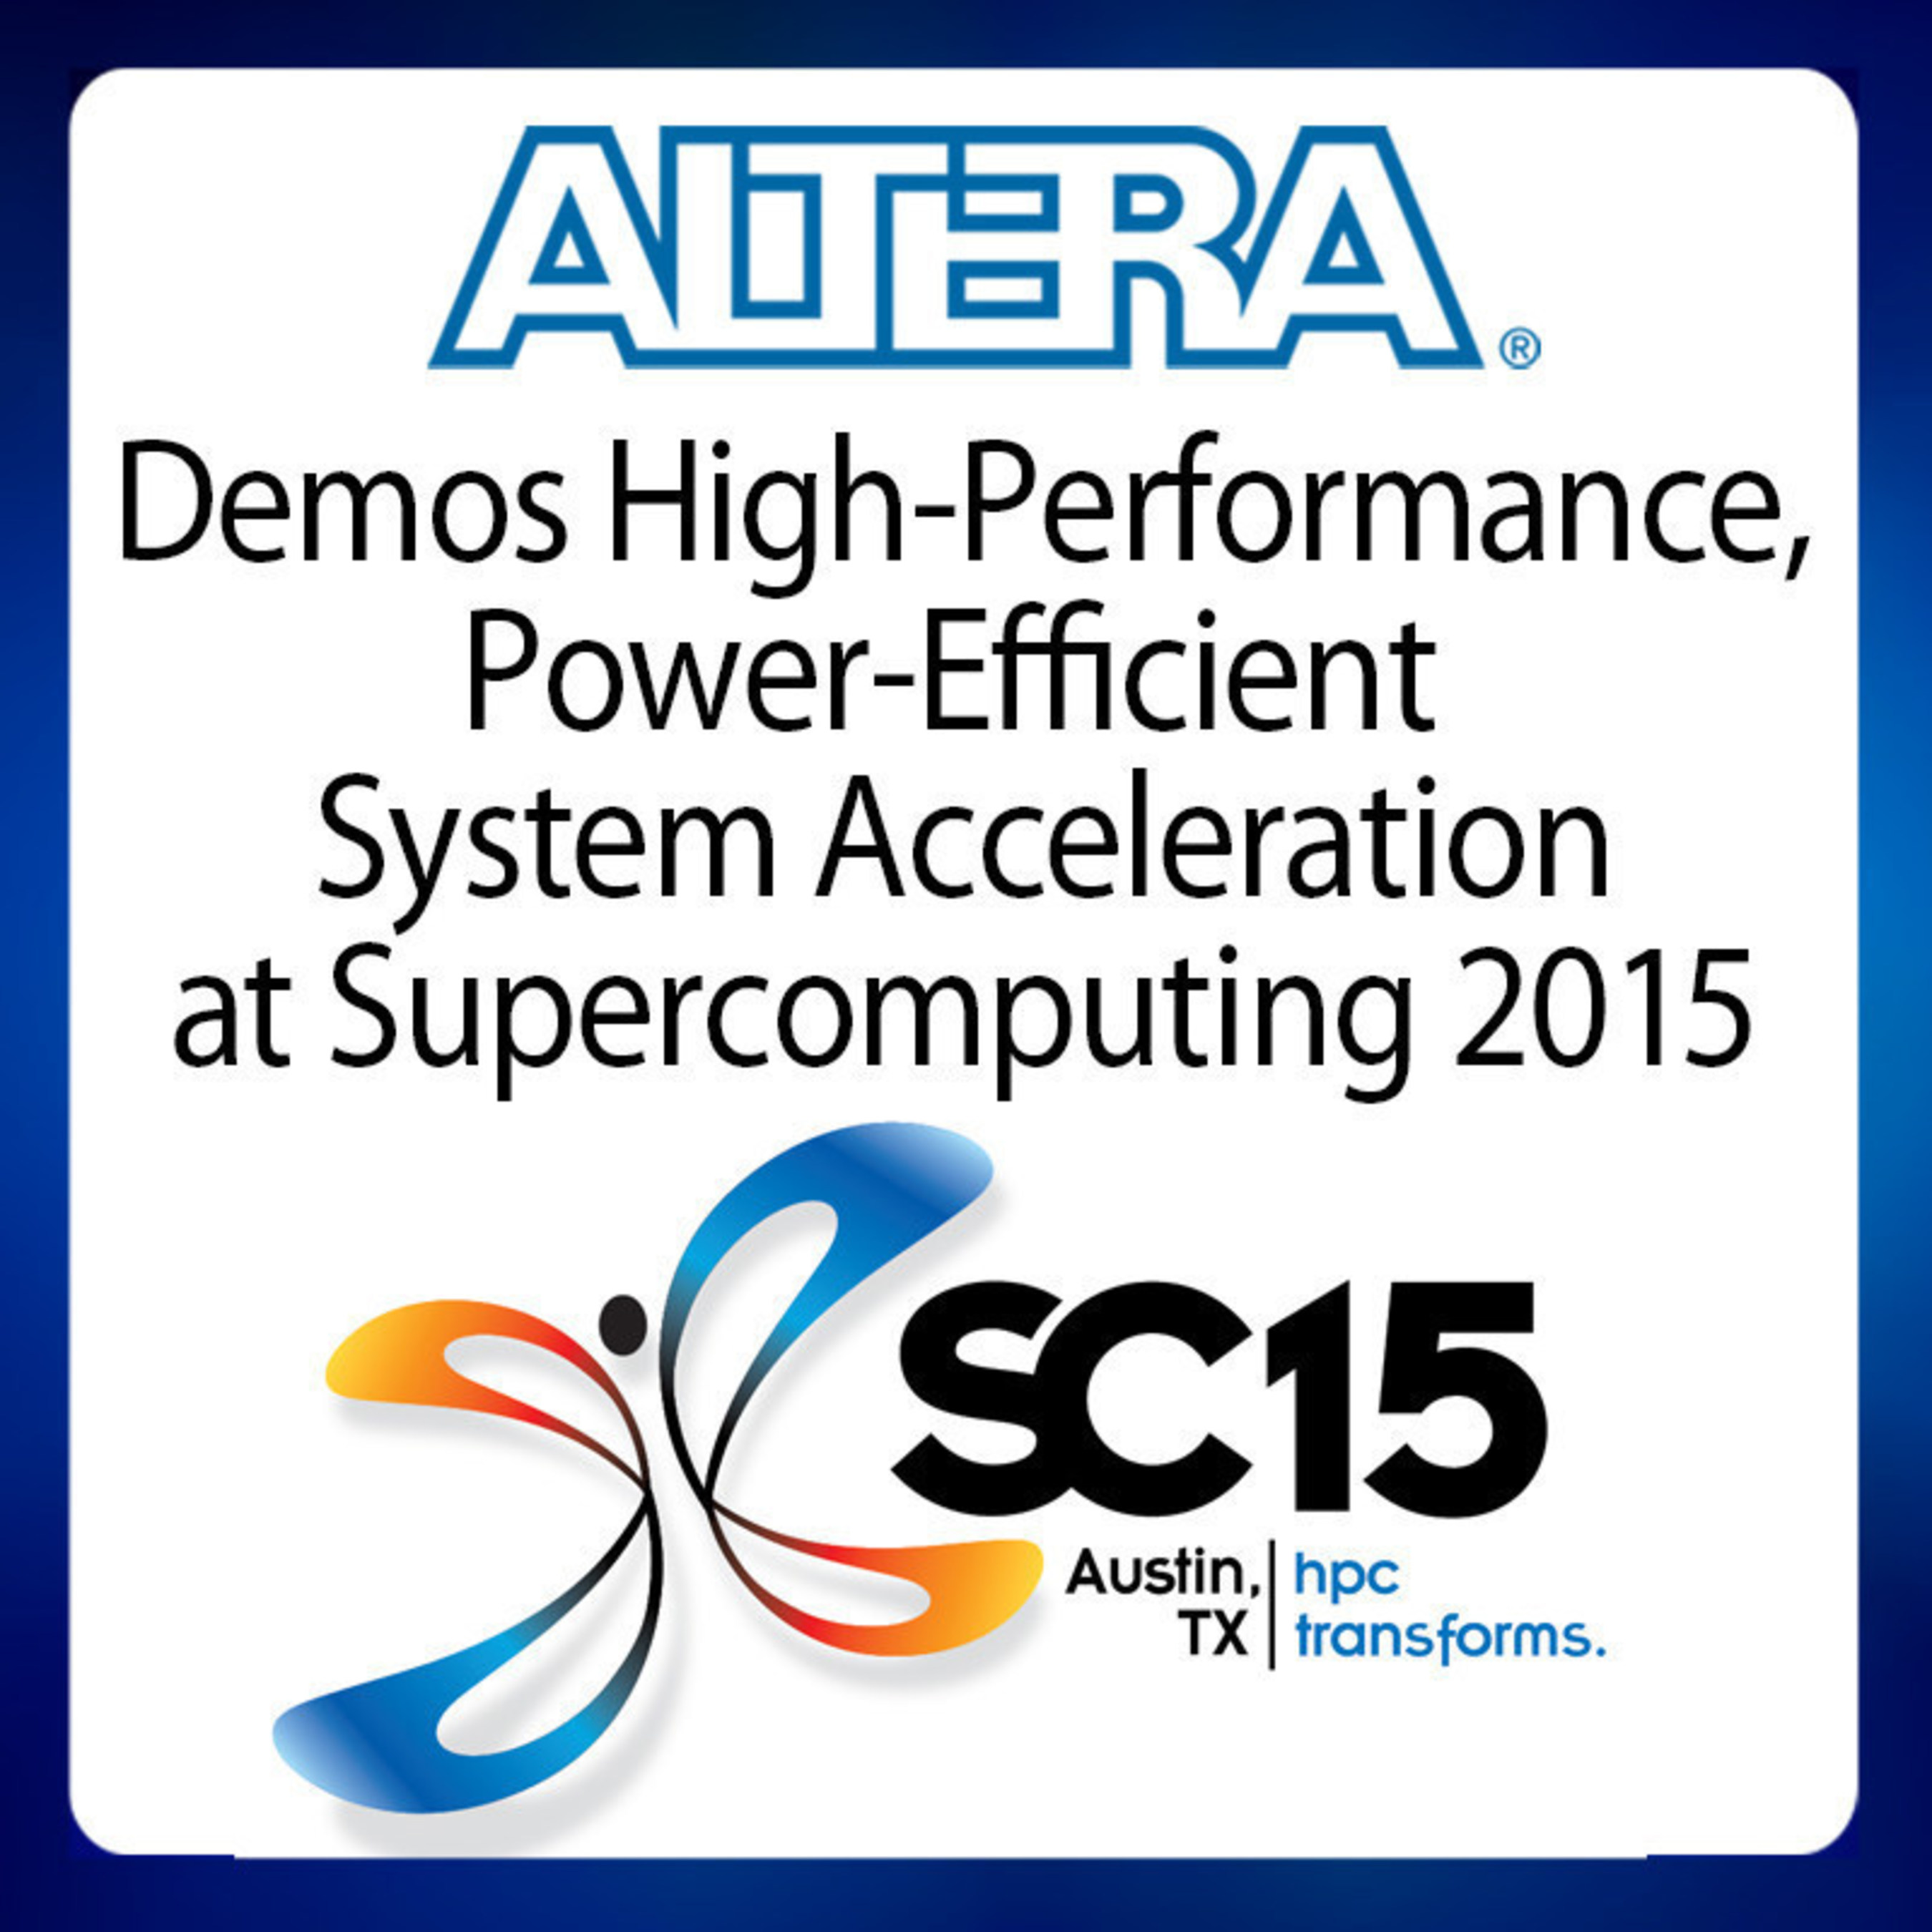 Altera Demonstrates FPGA-based Data Center and Search Acceleration Solutions at Supercomputing 2015